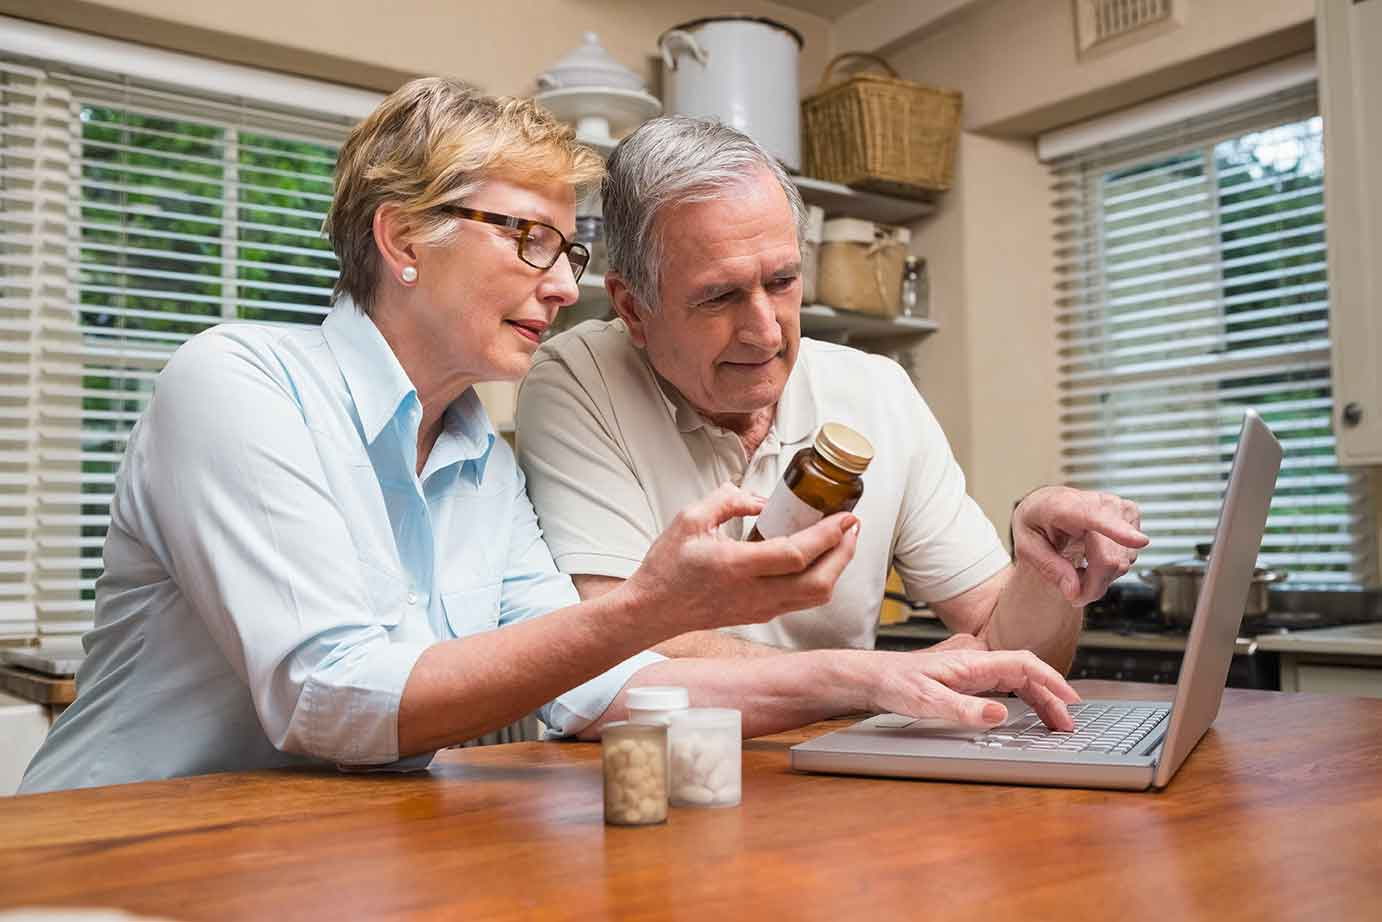 Lovely senior couple looking up RX prices on computer